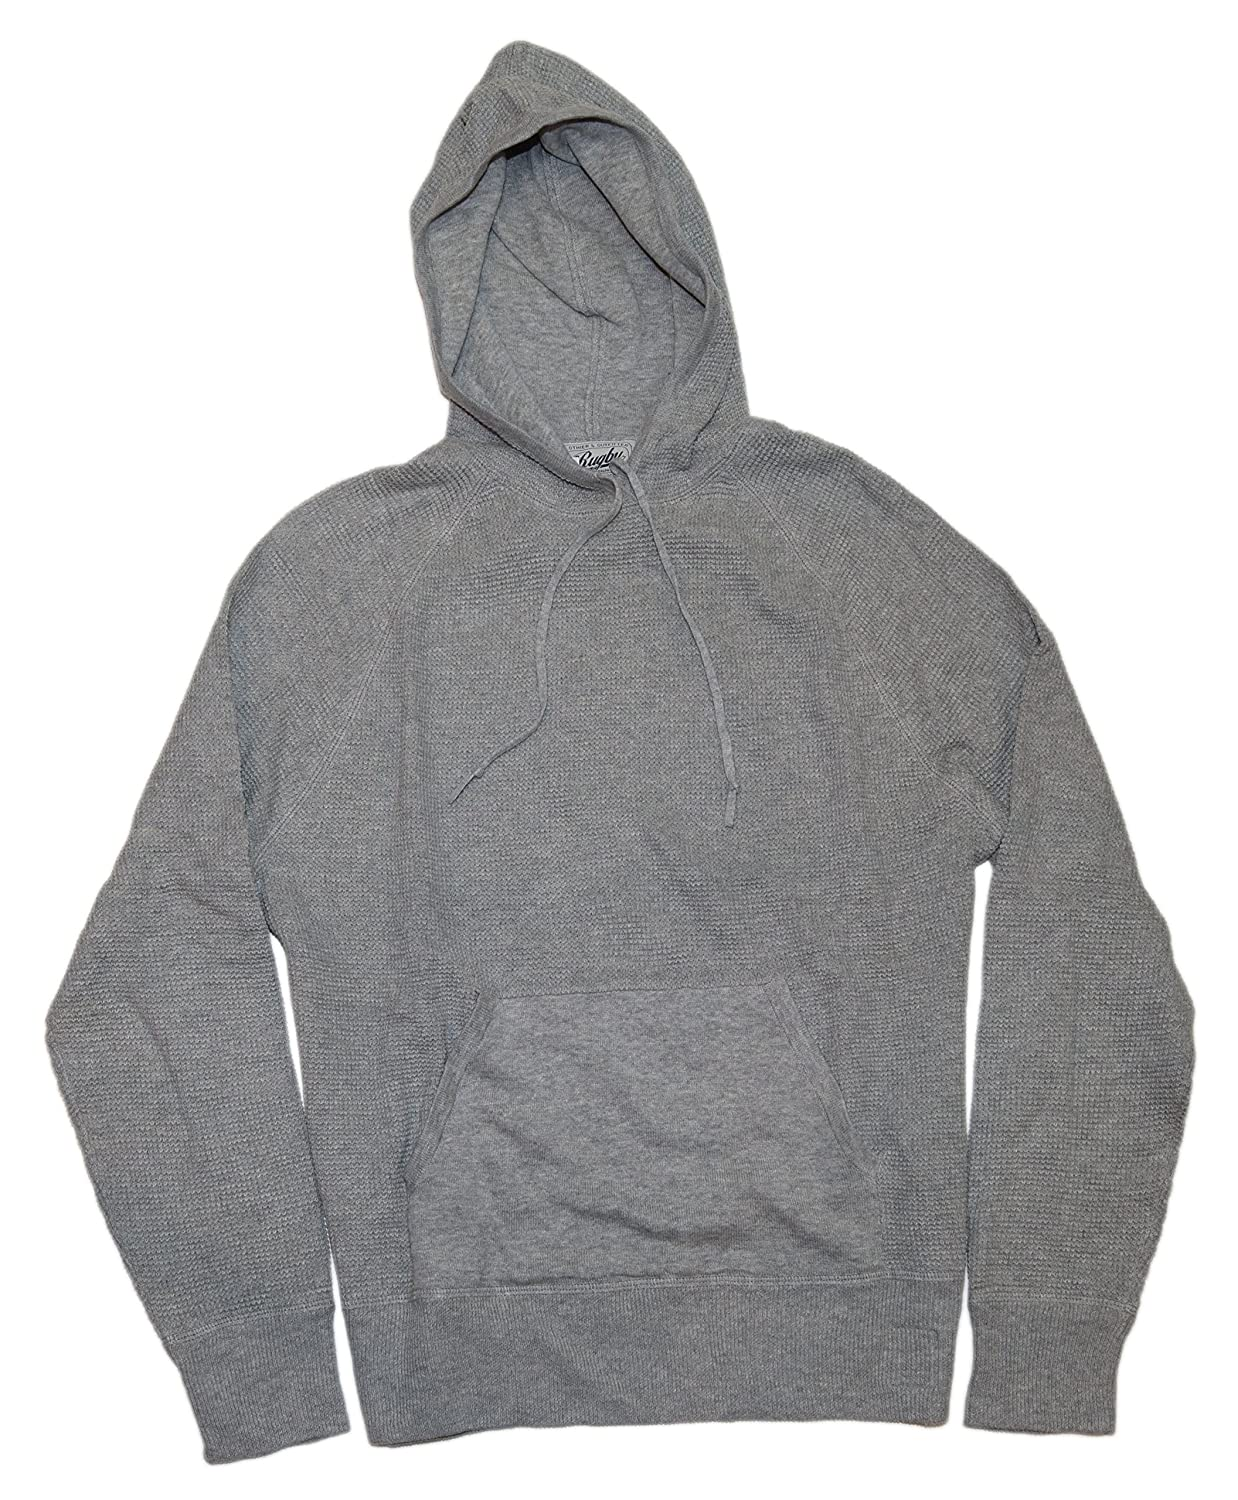 Polo Ralph Lauren Rugby Mens Hoodie Sweatshirt Shirt Thermal Cotton Gray  Small at Amazon Men s Clothing store  Fashion Hoodies be79484db